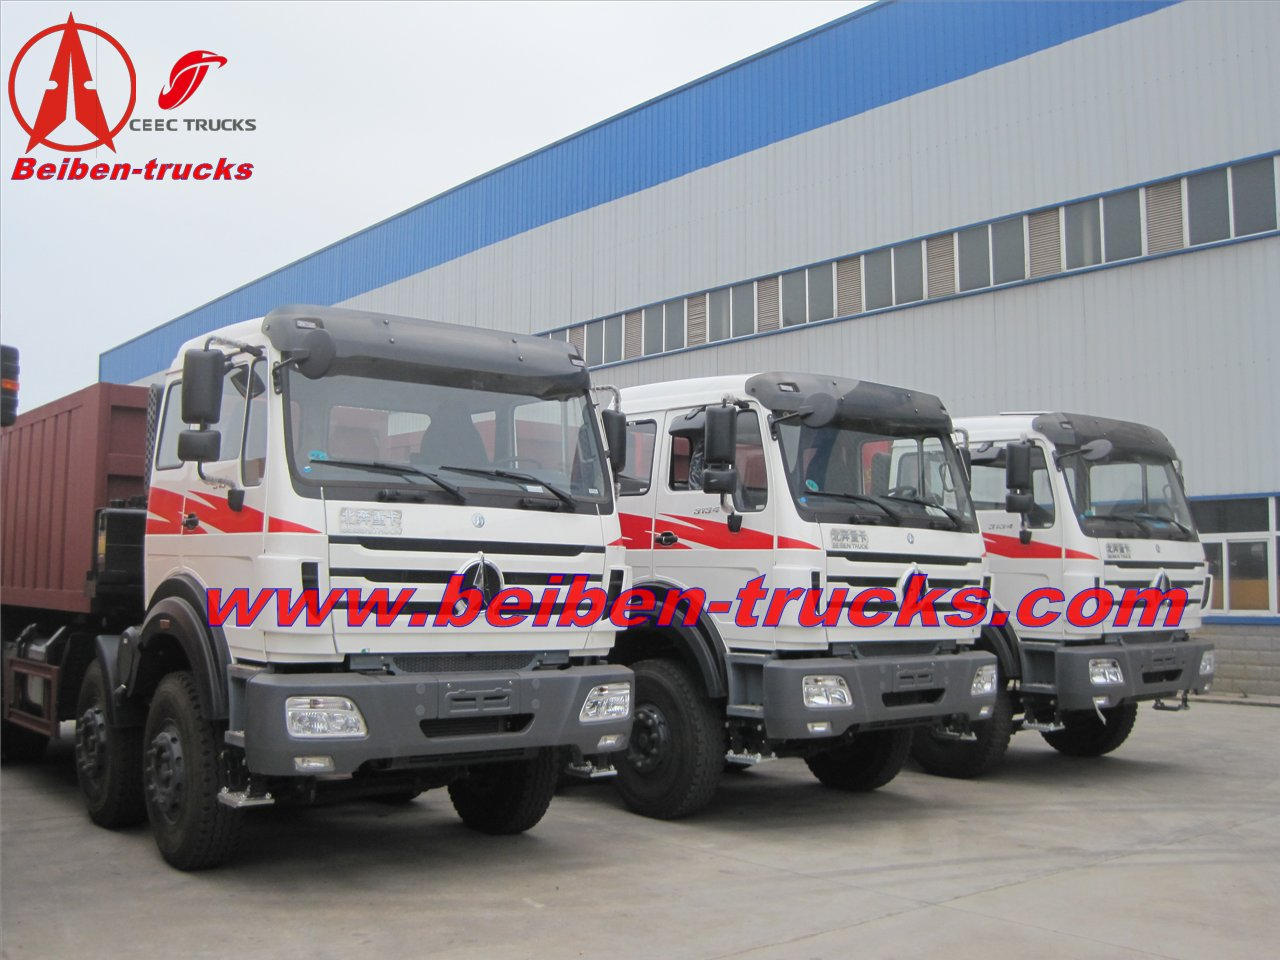 baotou beiben heavy duty truck co.,limited